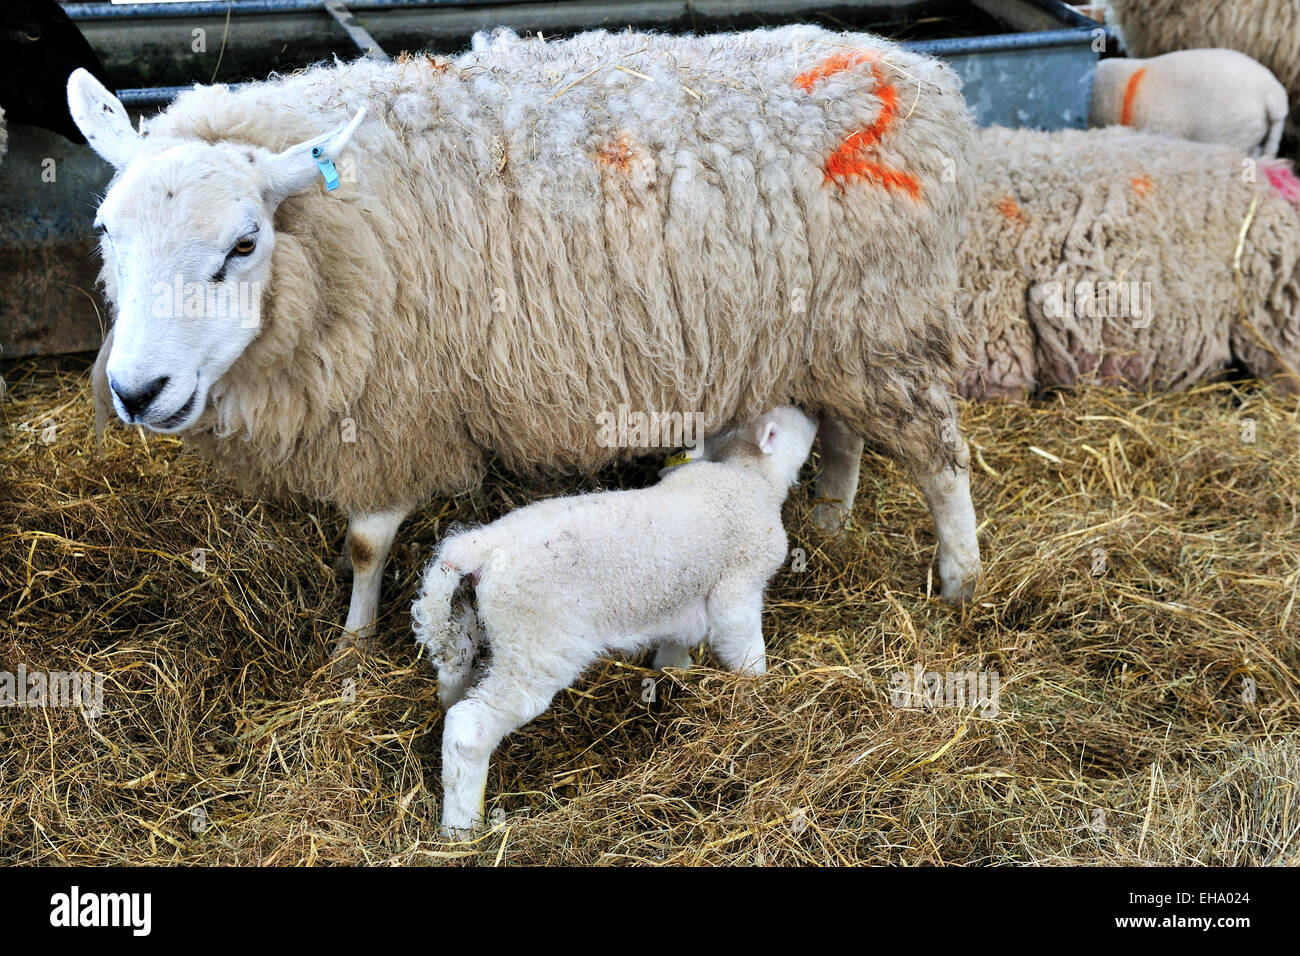 New born lamb suckling from mother - Stock Image